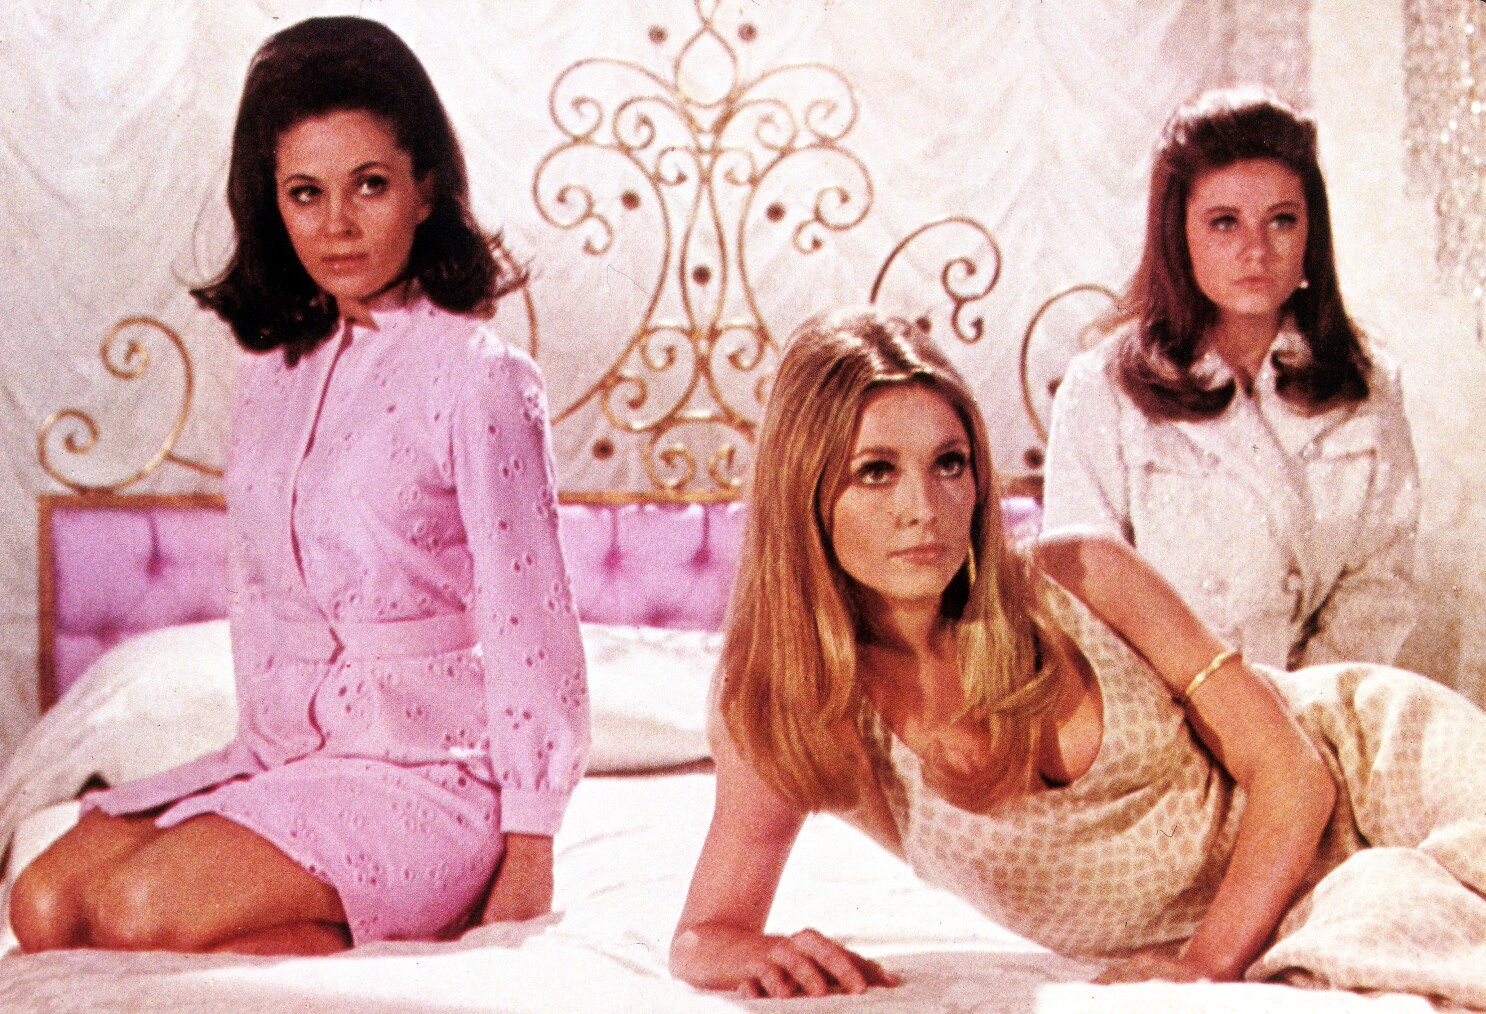 la-ca-valley-of-the-dolls-movie-62.JPG